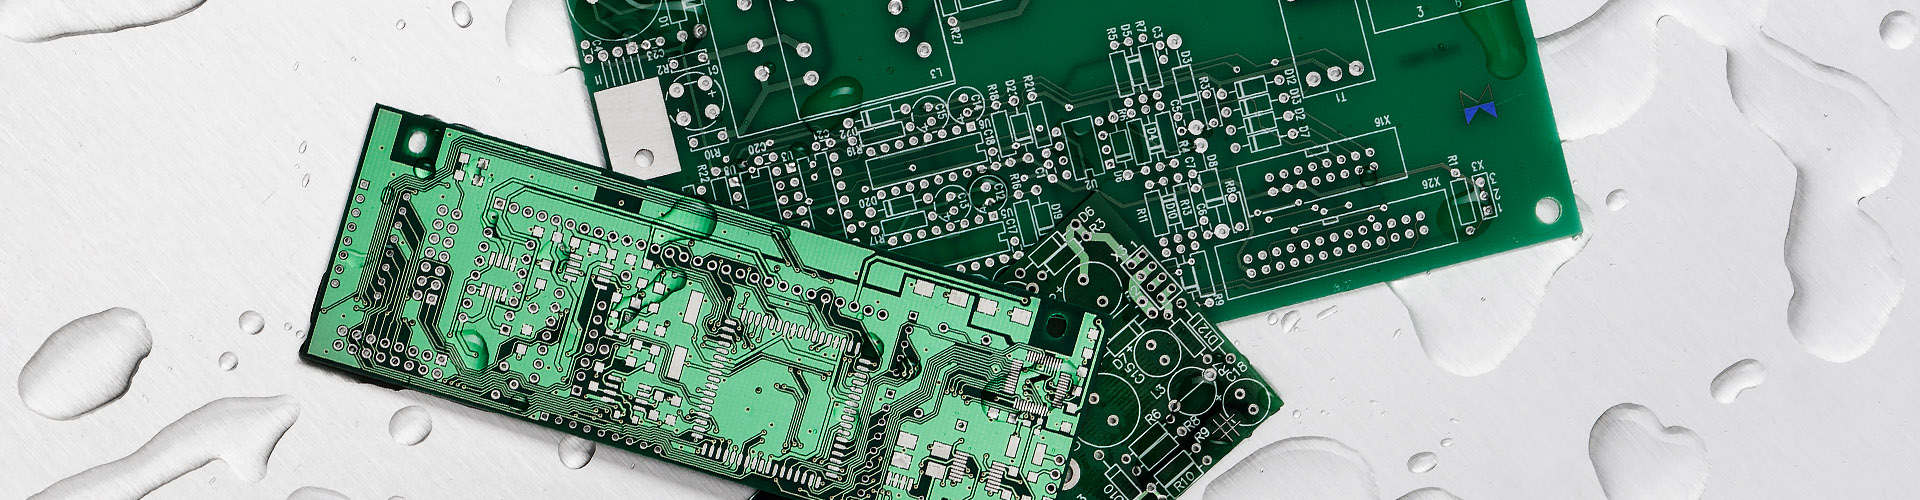 Circuit boards